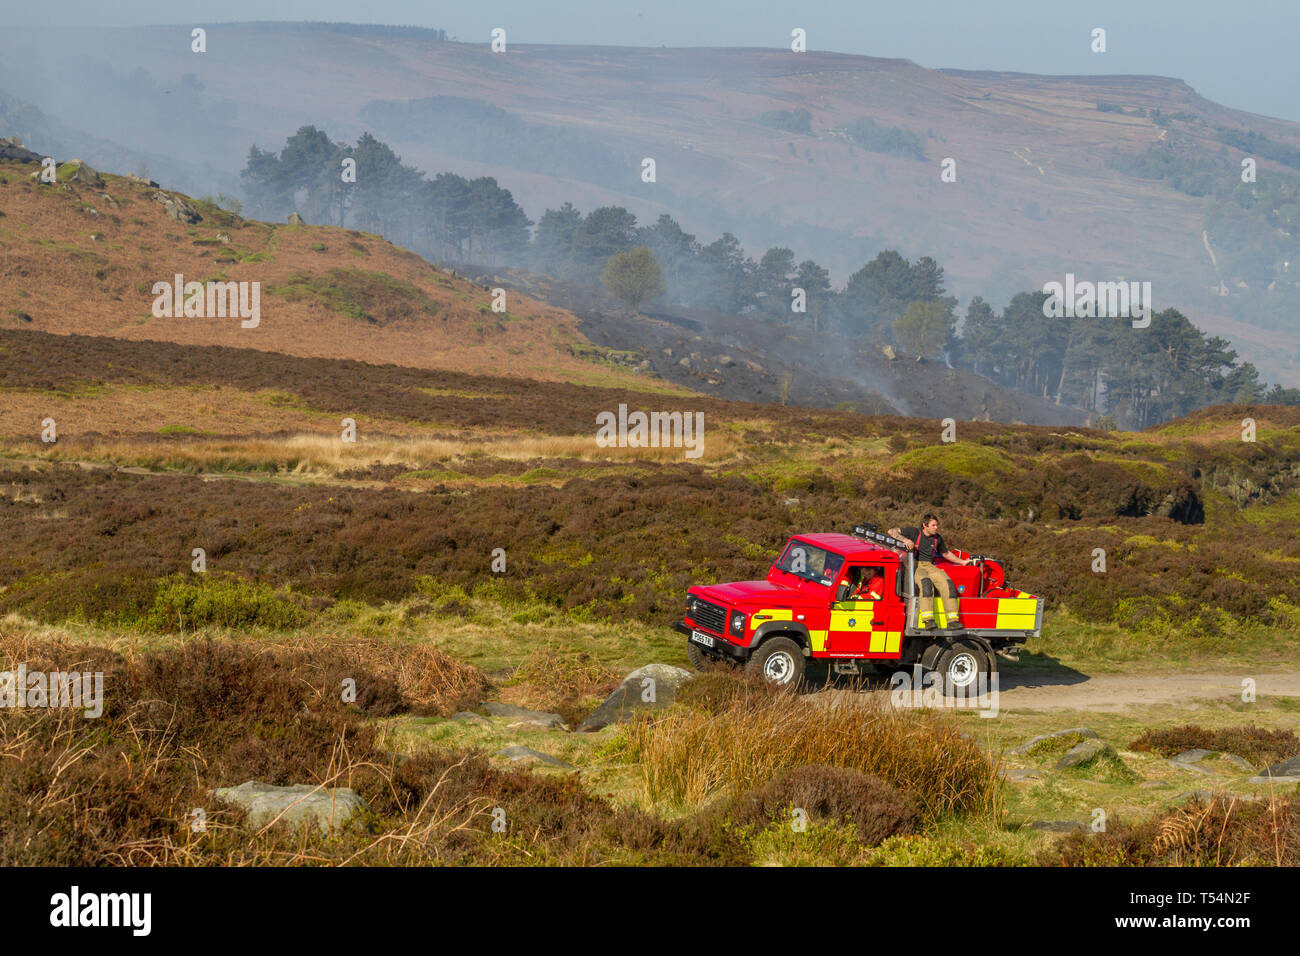 UK Moorland Fire: Ilkley Moor, West Yorkshire, UK. 21st April 2019.  Firefighter sits on the back of a 4x4 fire truck as efforts continue to extinguish wildfire - the moors the morning after still clearly smoking.  Rebecca Cole/Alamy Live News - Stock Image